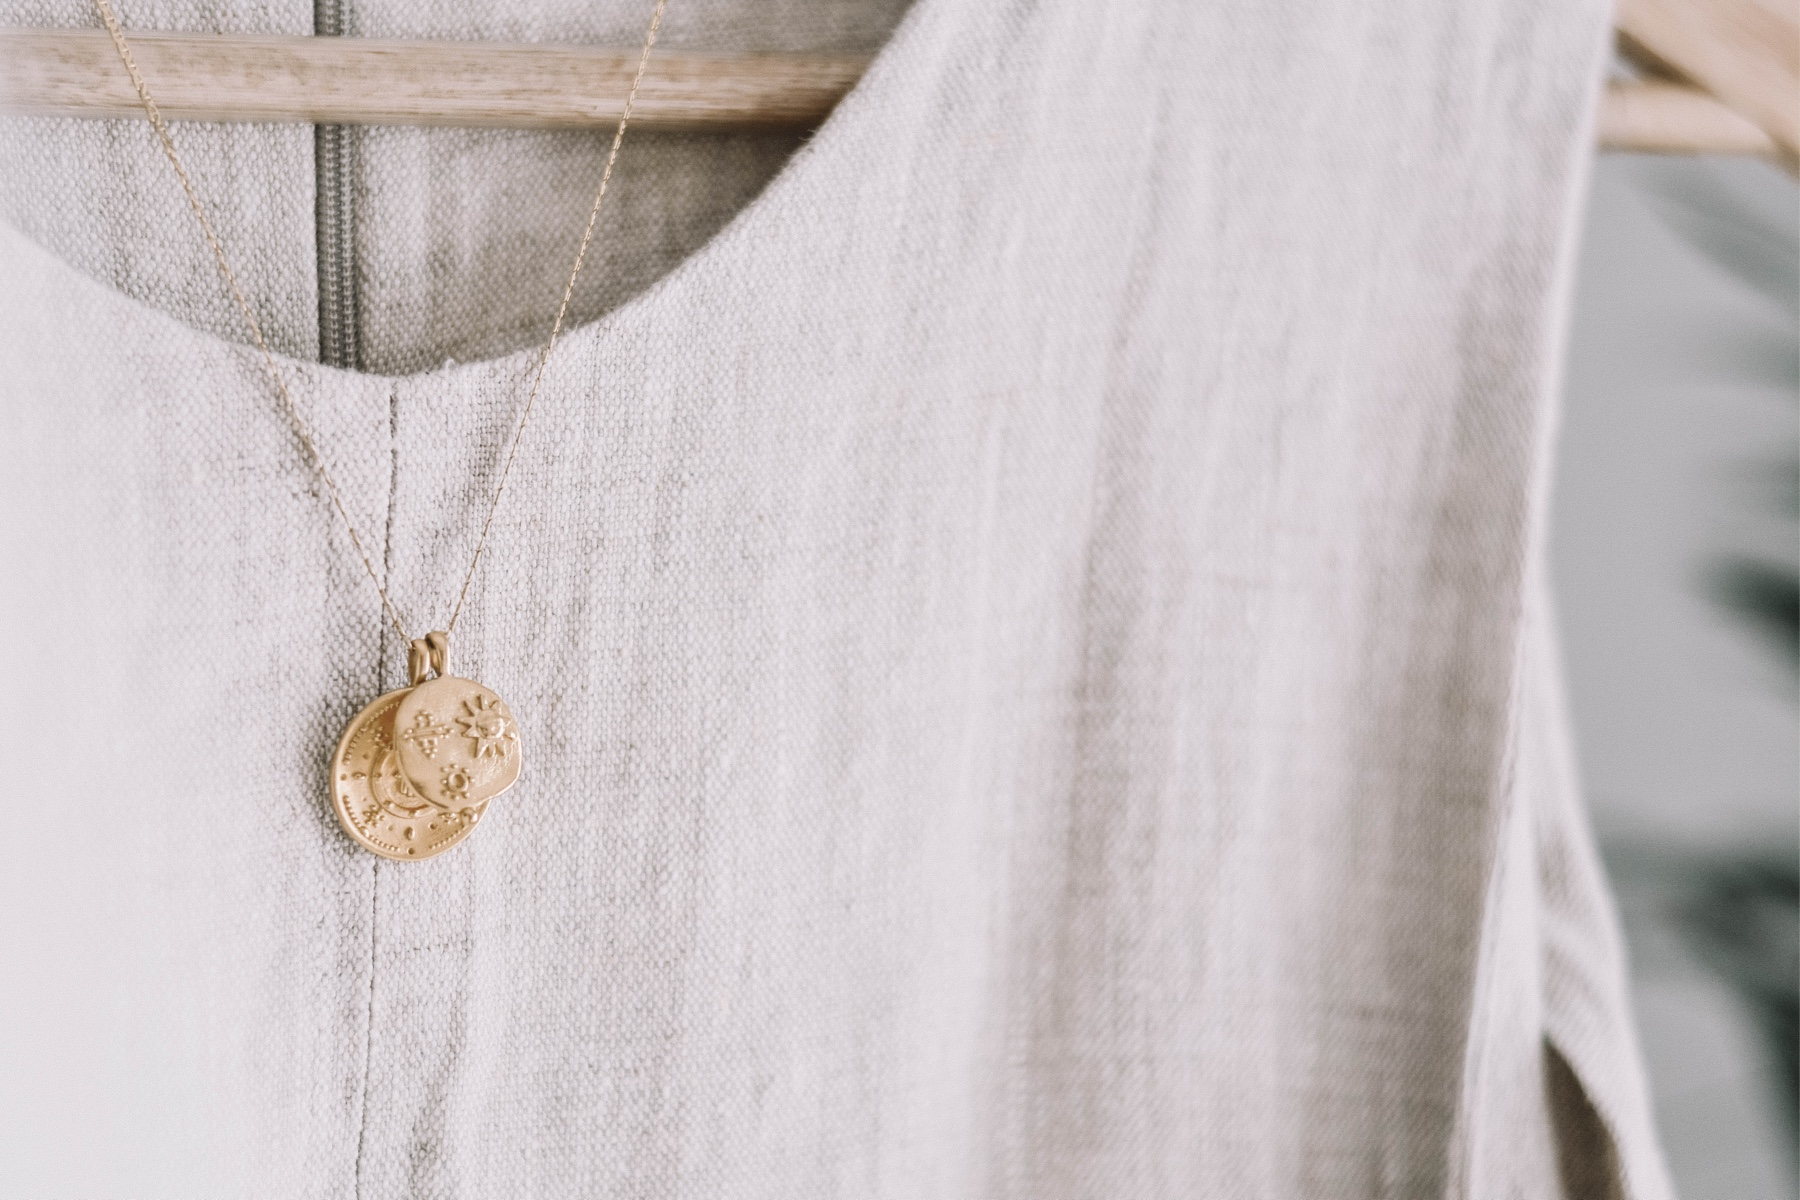 Photo of a gold necklace on a hanger with a linen shirt.